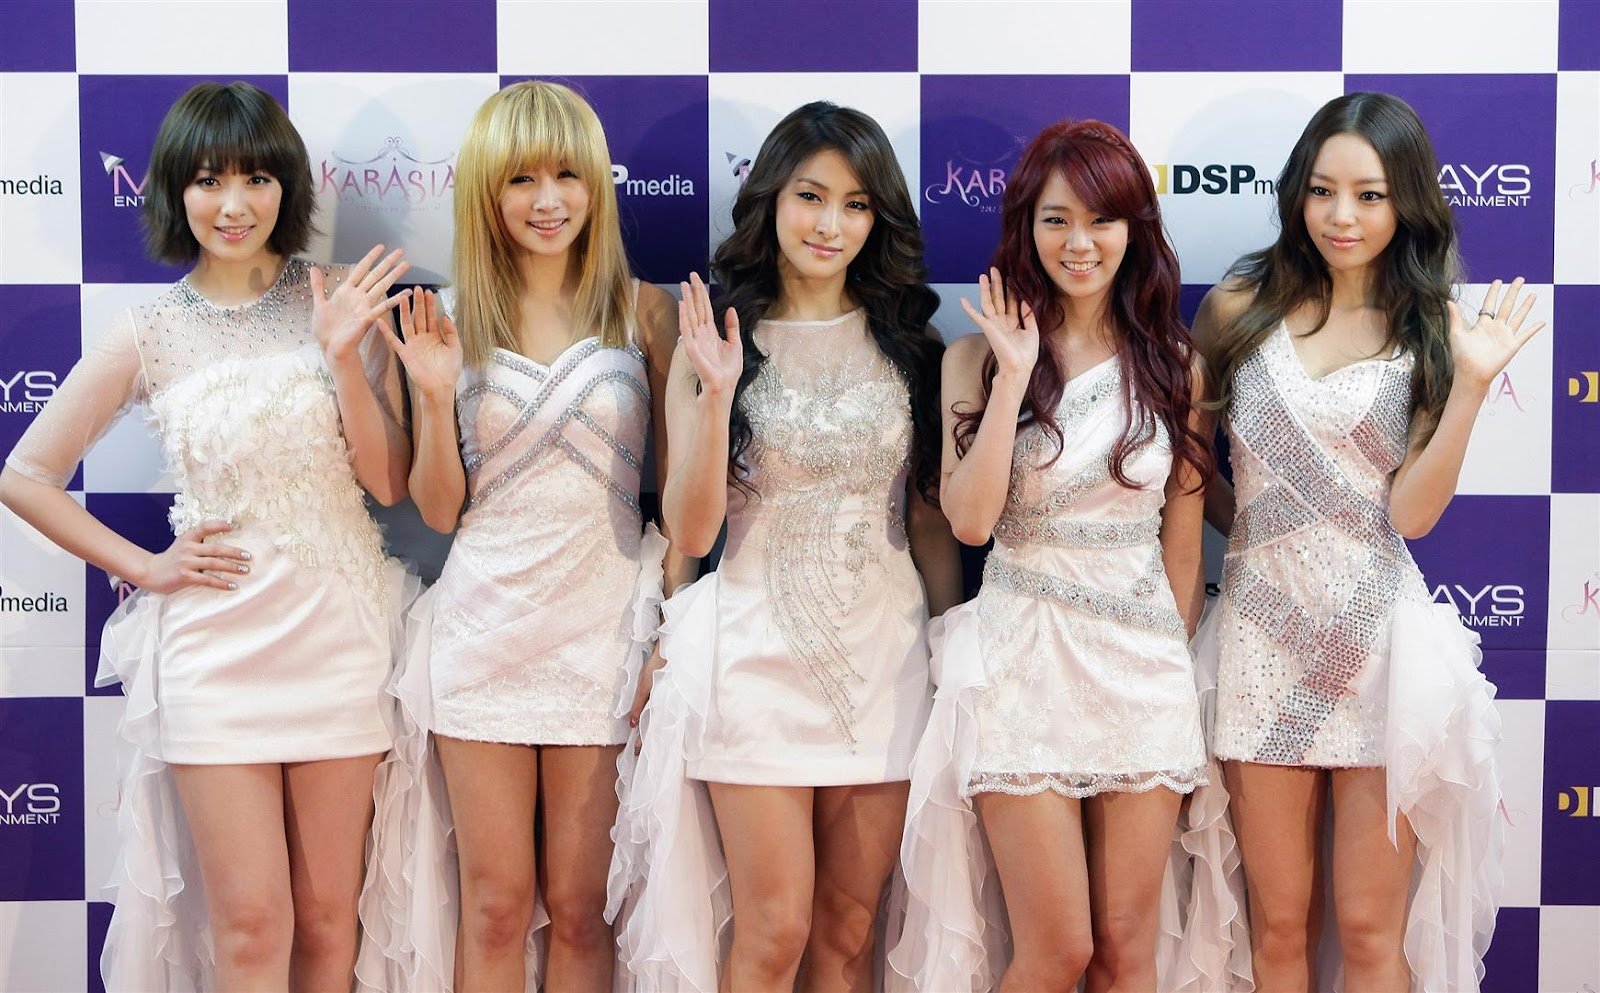 [NEWS] KARA to make comeback in second half of 2012